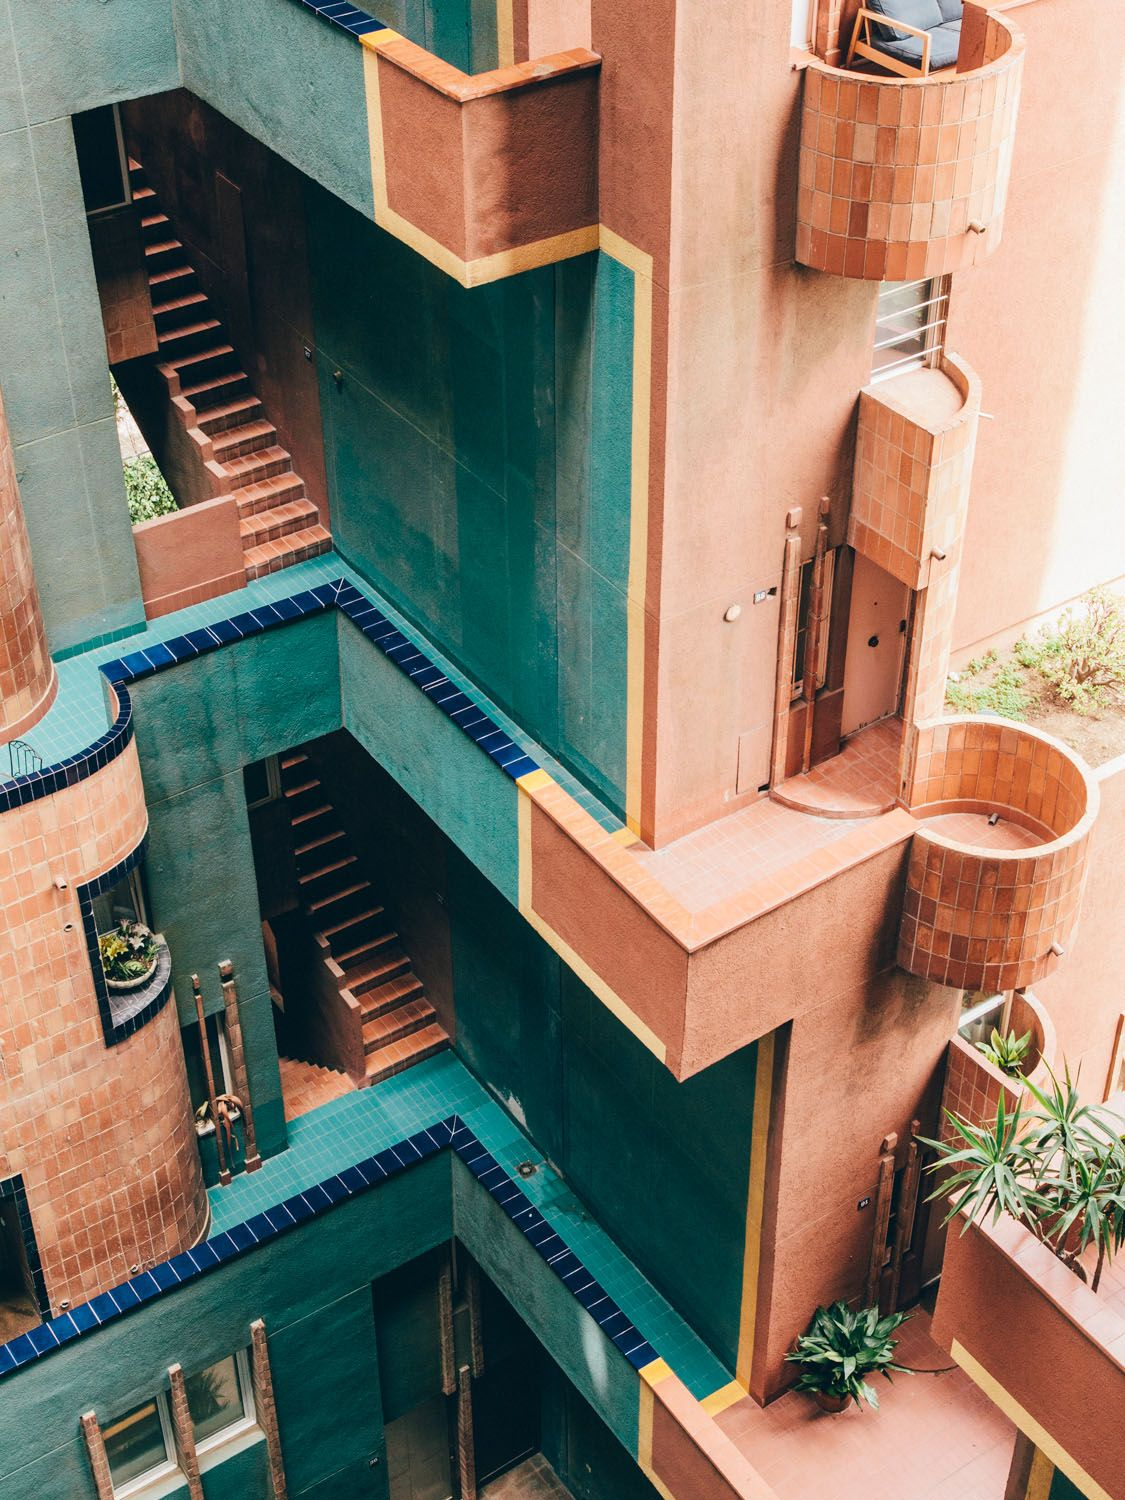 Ricardo Bofill's utopian vision for social living found form in the cubist heights and halls of Walden 7.   Salva López